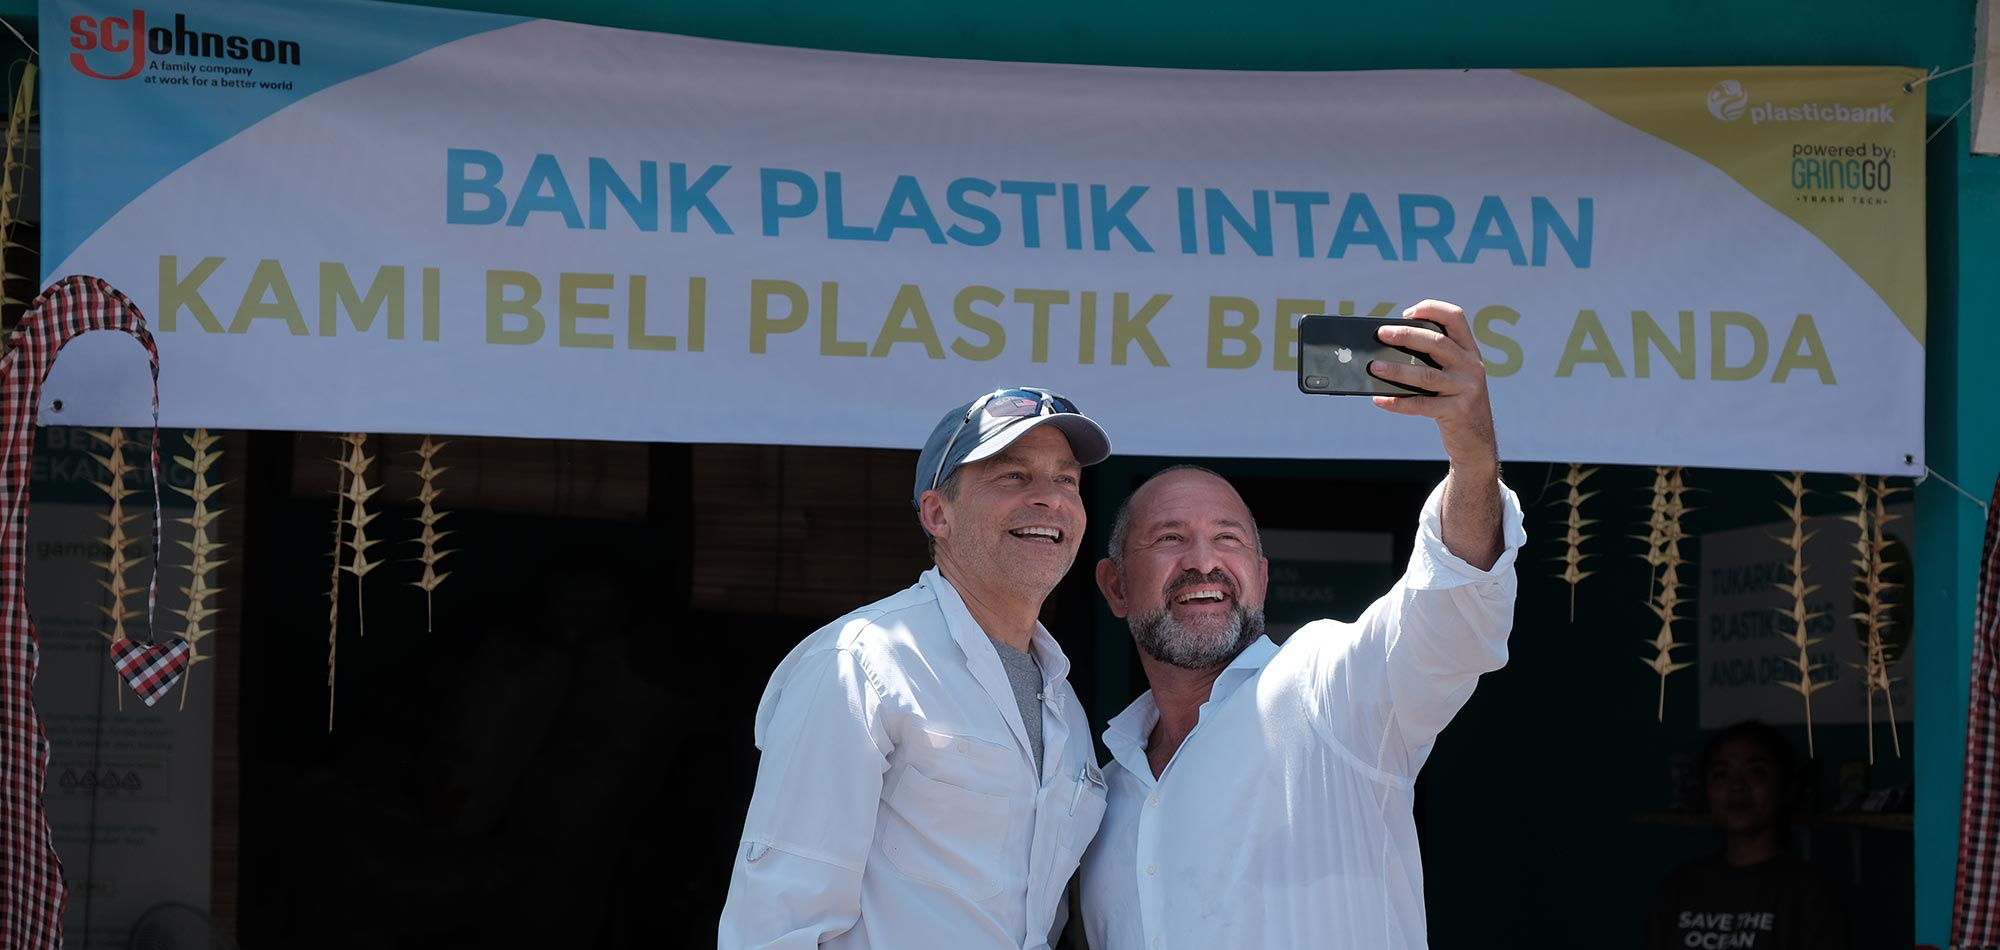 Fisk Johnson Chairman and CEO of SC Johnson and David Katz CEO of Plastic Bank open the first of eight recycling centers in Indonesia.